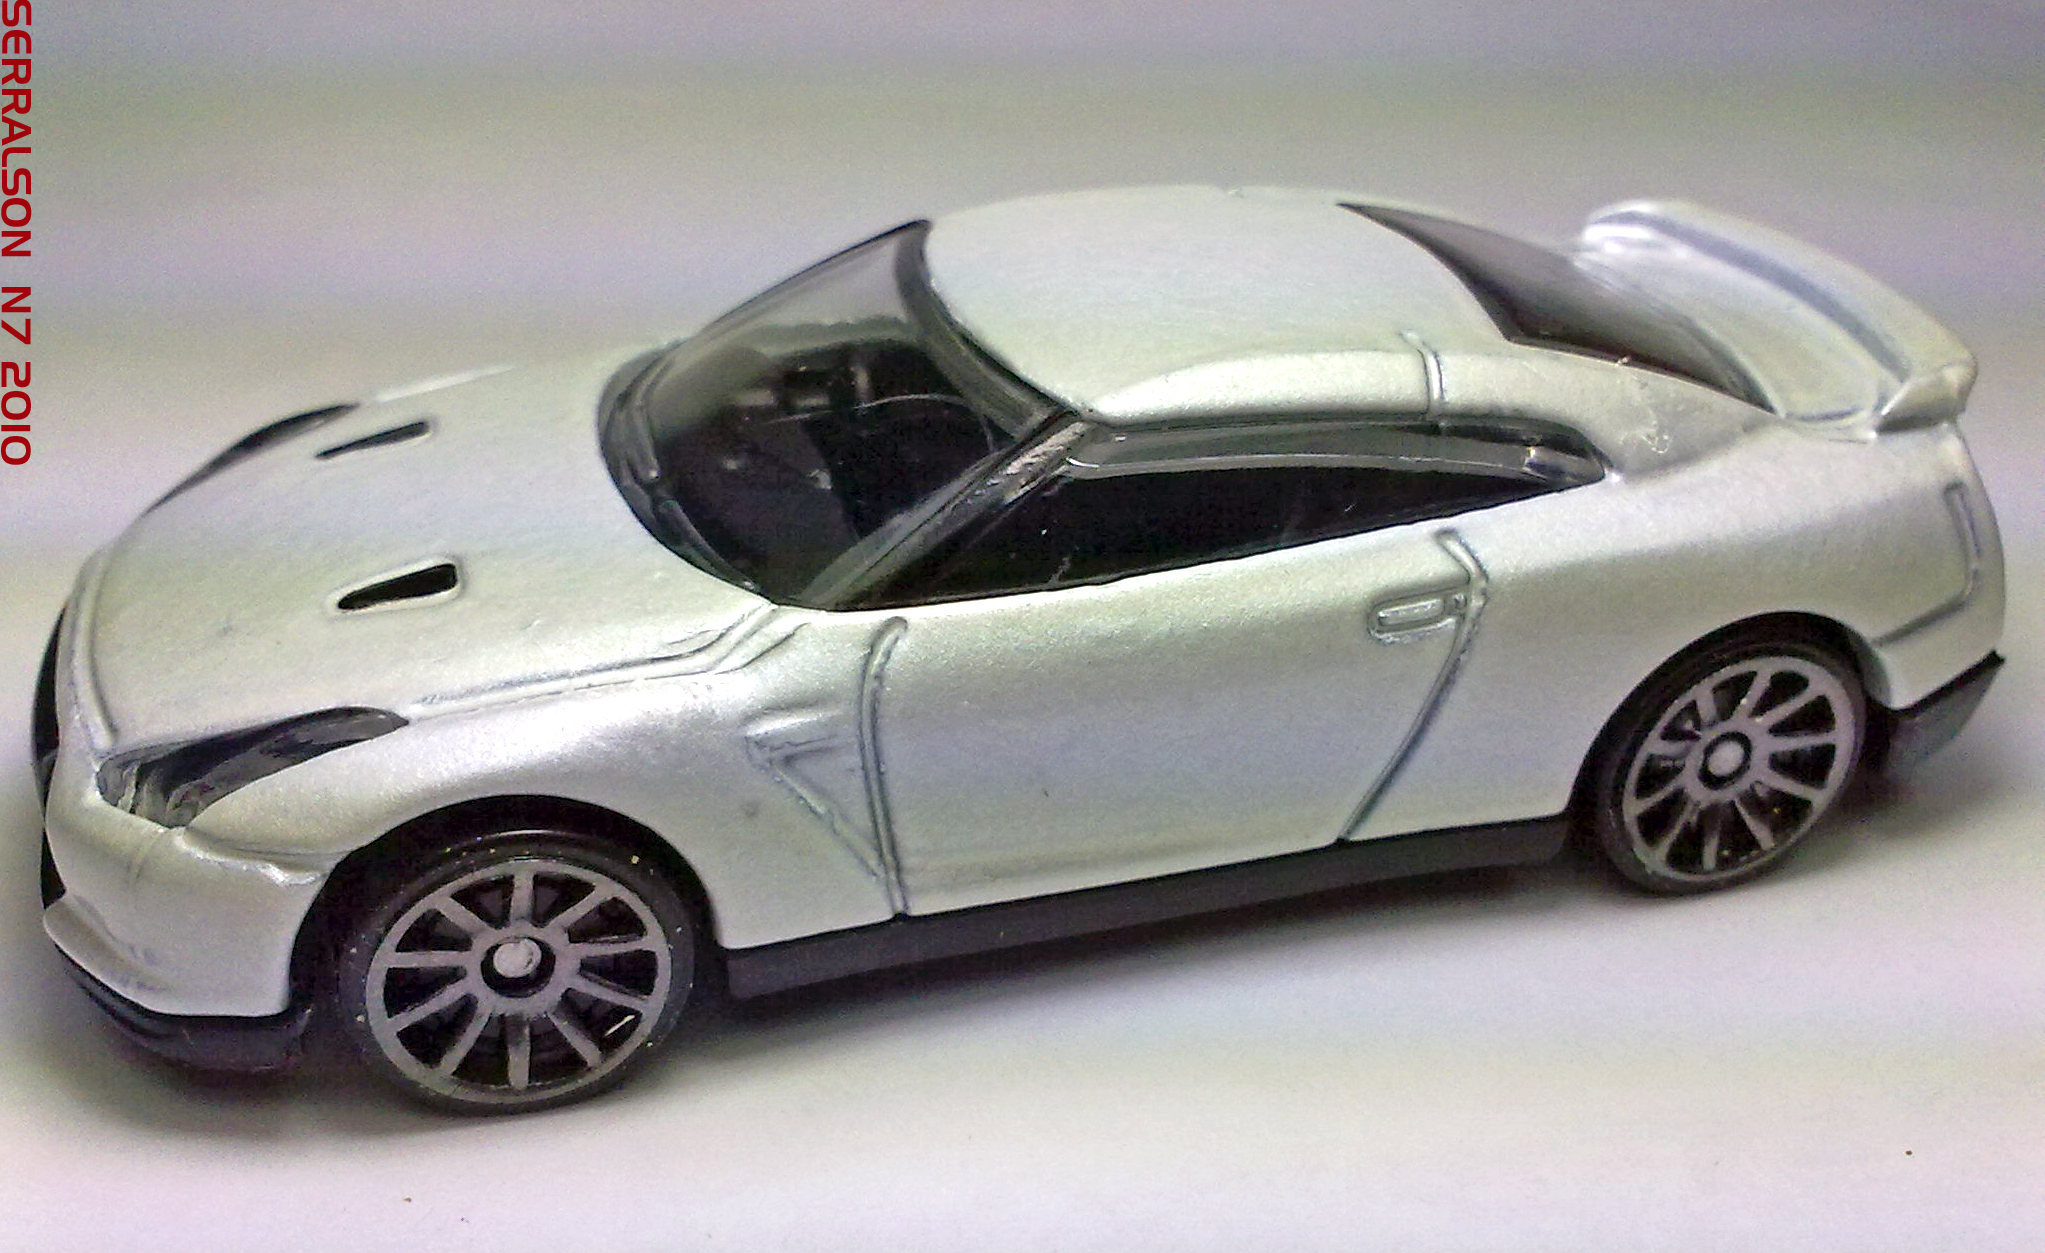 2009 Nissan GT-R - Hot Wheels